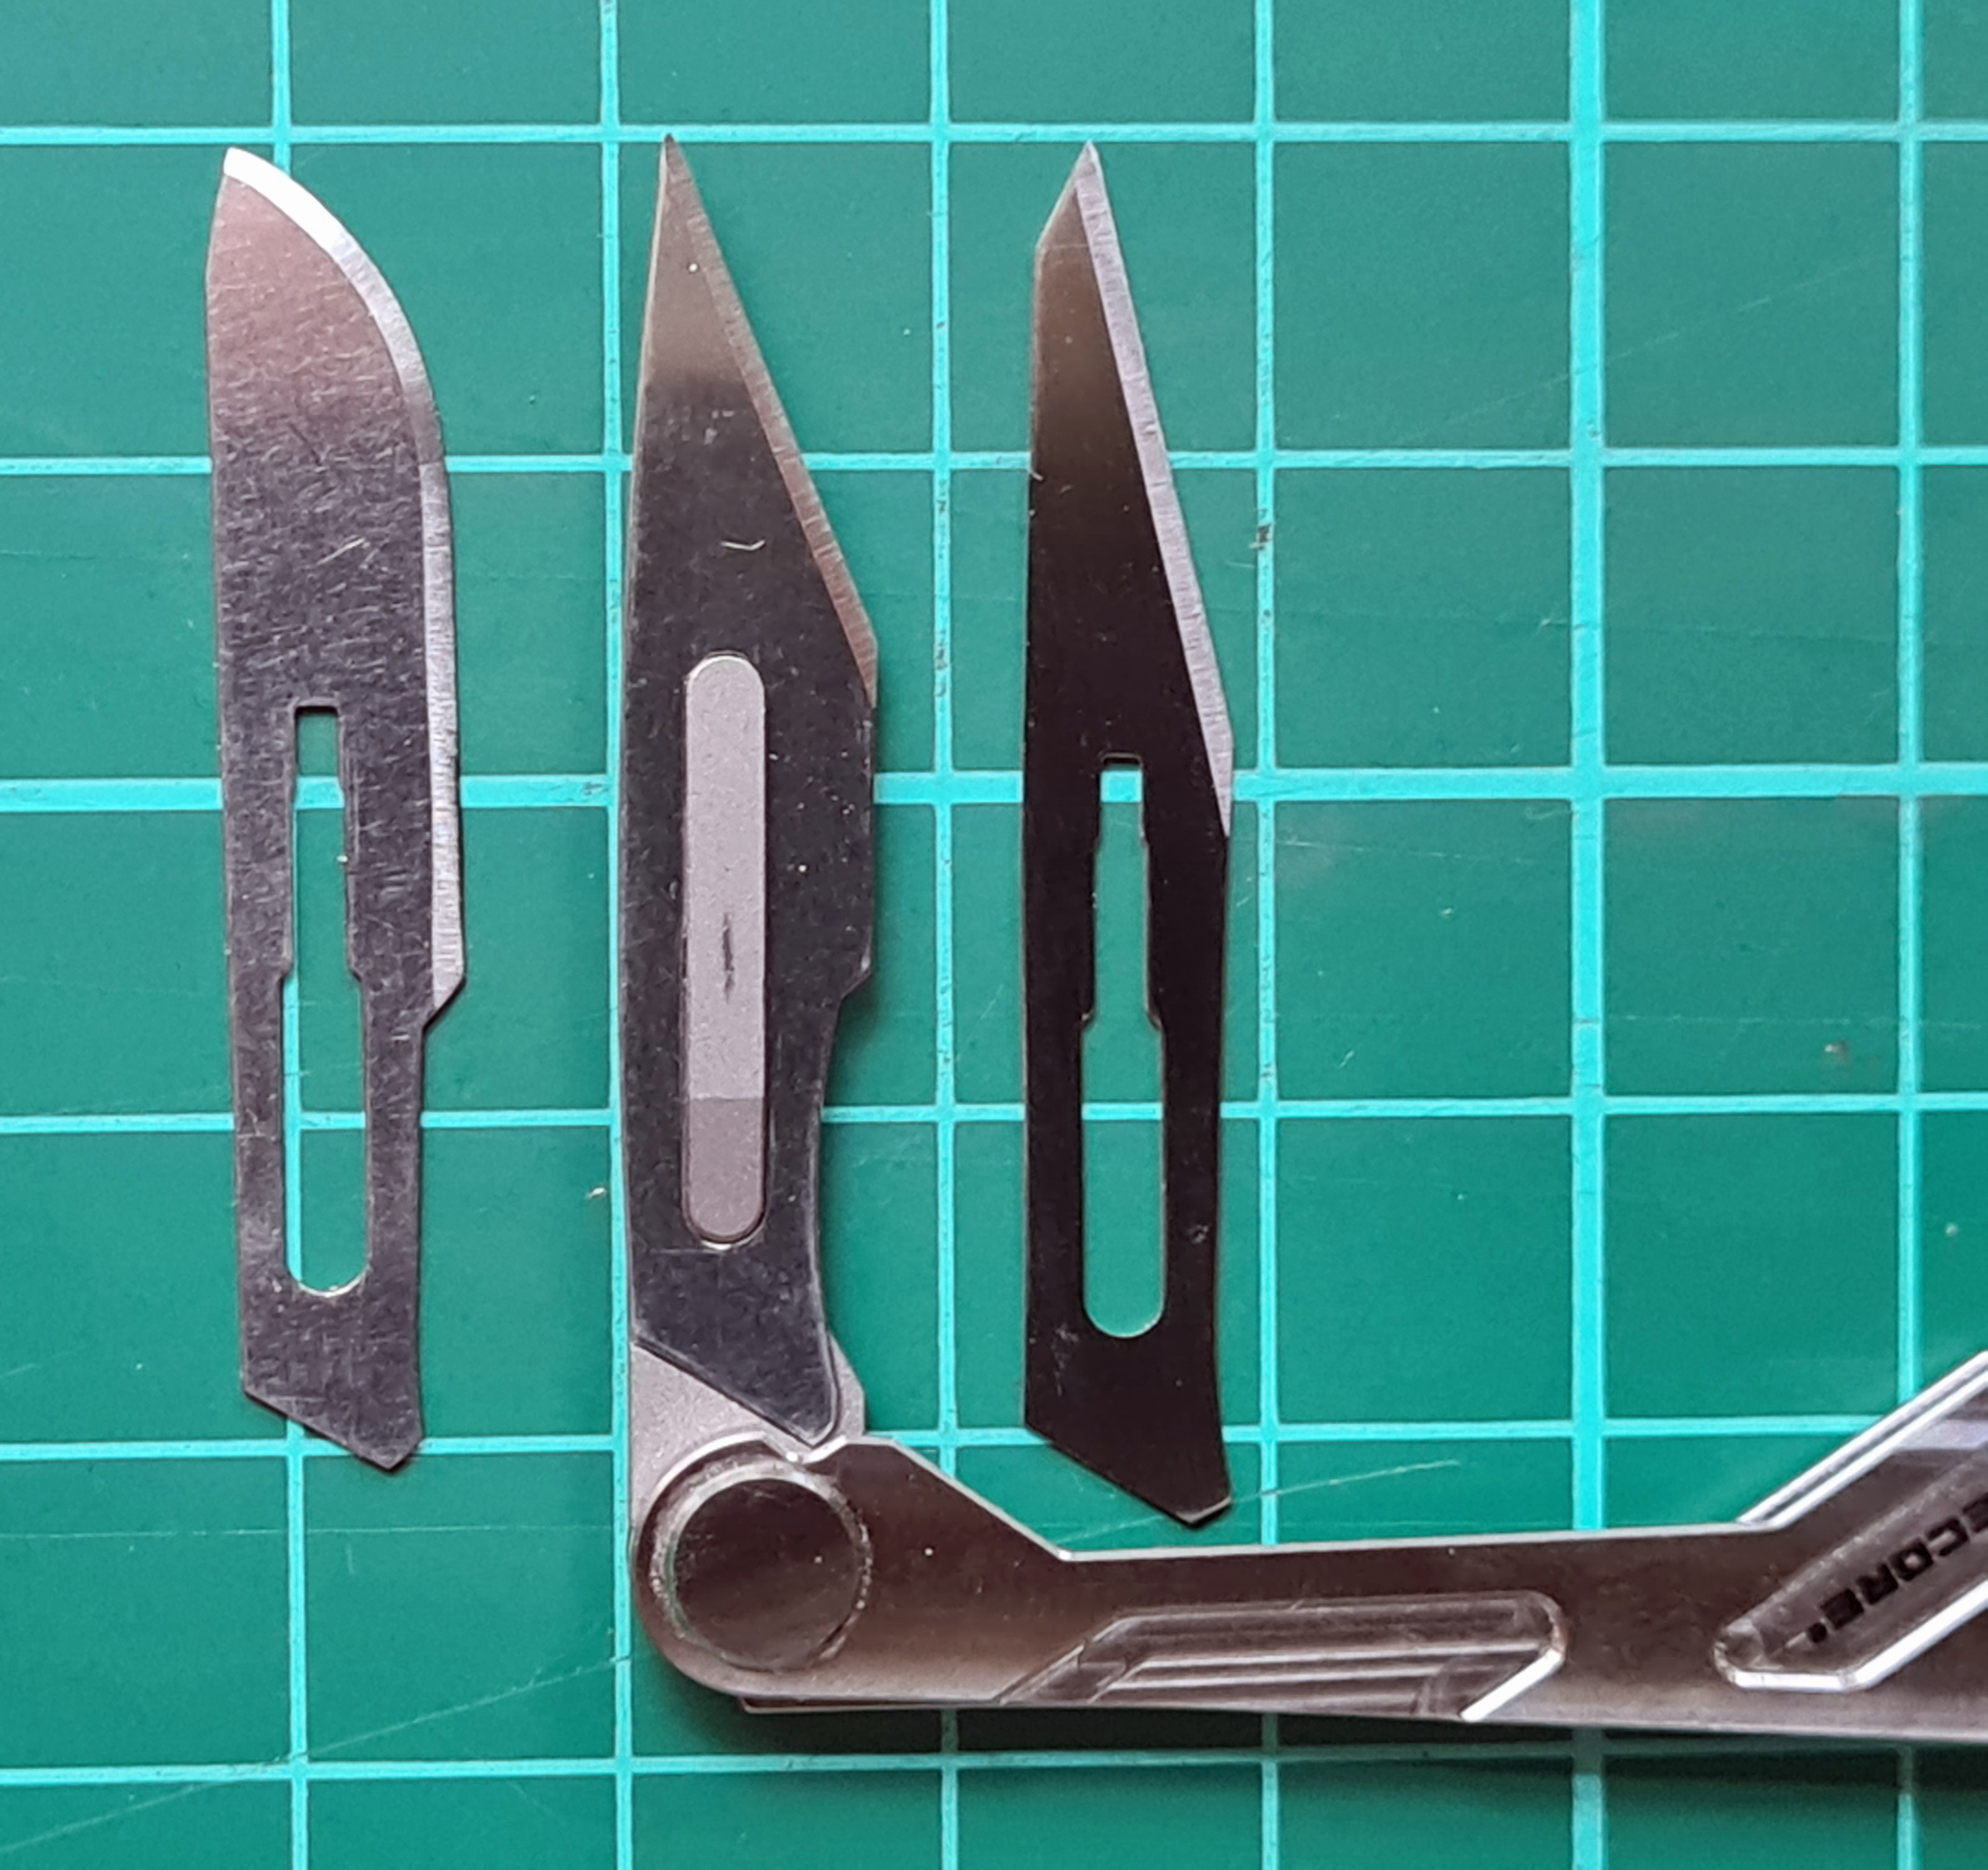 Cutting edge shape and length of blades No. 10, 10A and 11